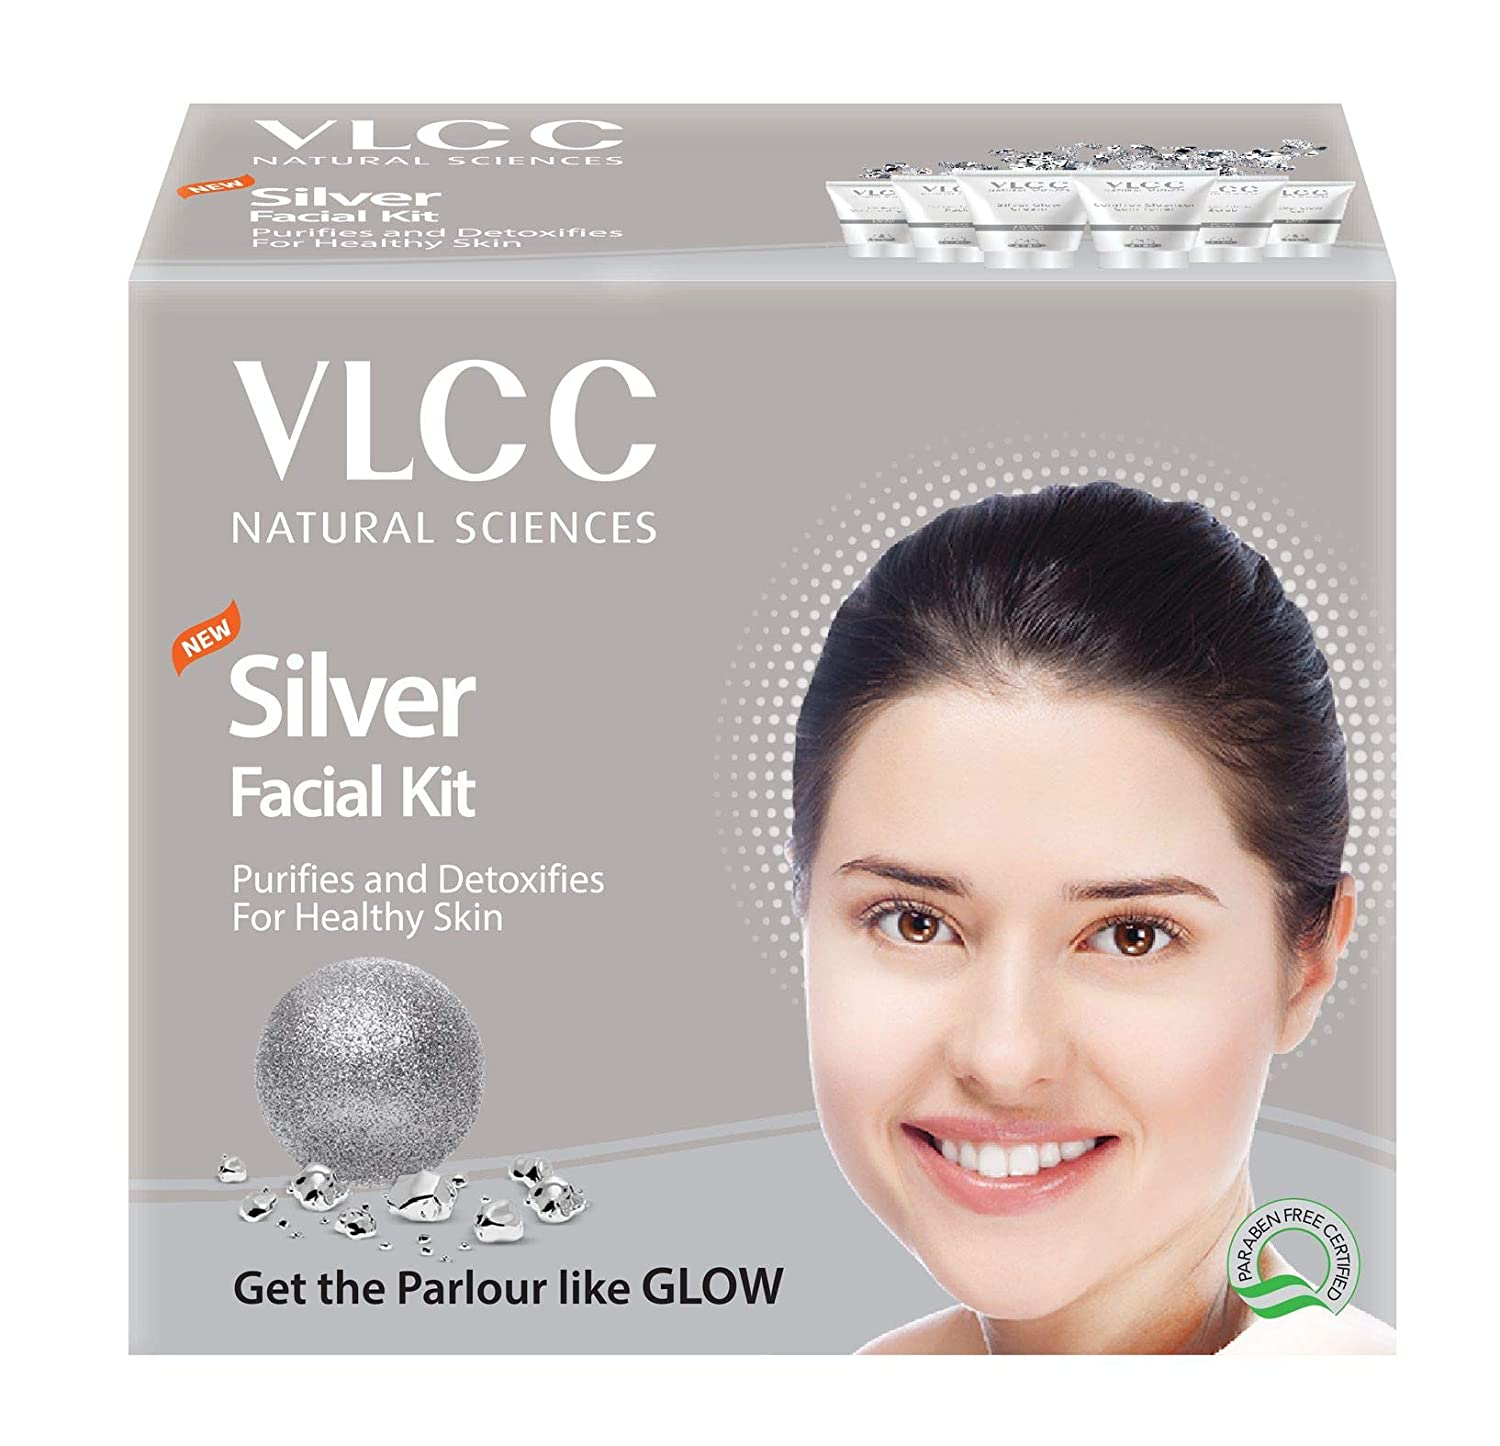 VLCC Natural Sciences Silver Facial Kit